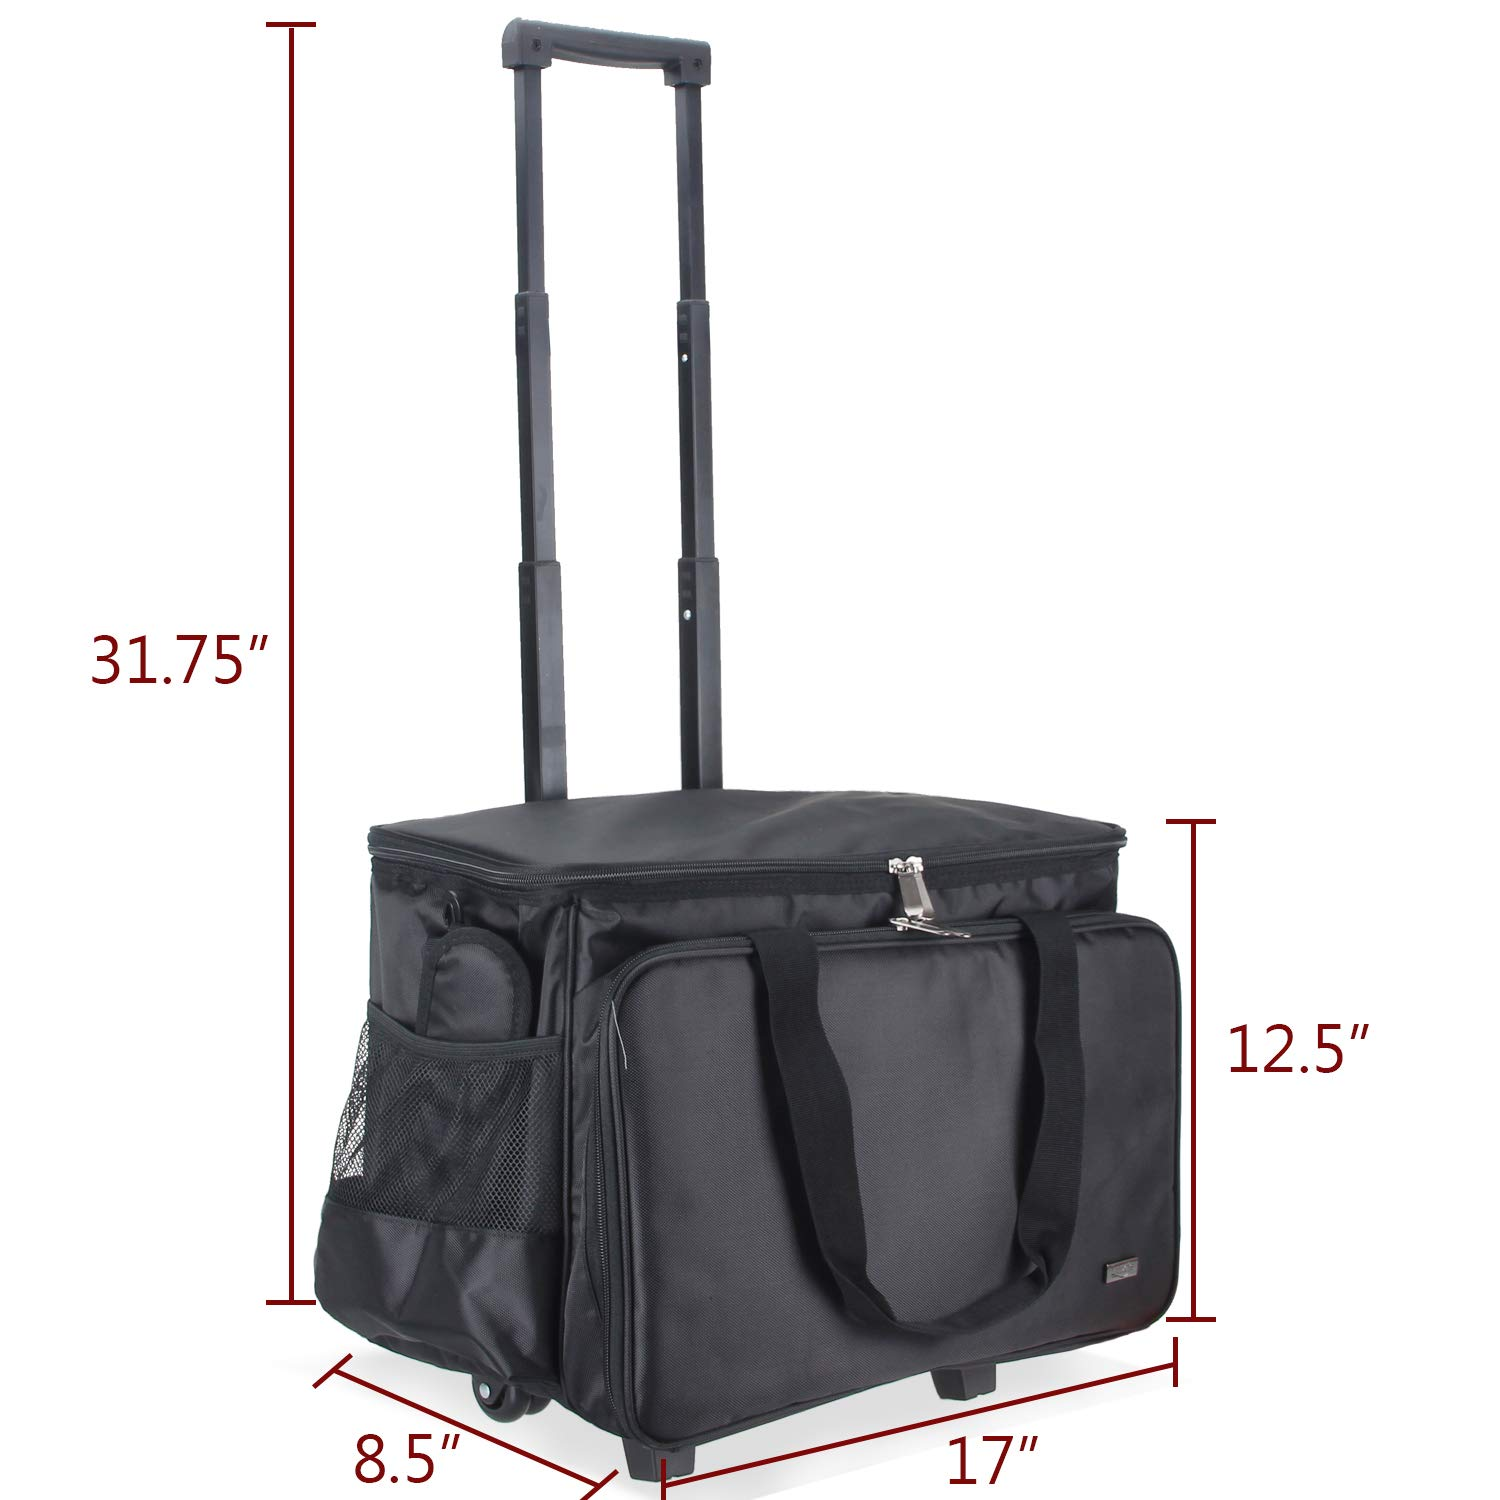 7cafadaf7d97 Luxja Sewing Machine Carrying Bag, Tote Bag for Sewing Machine and ...